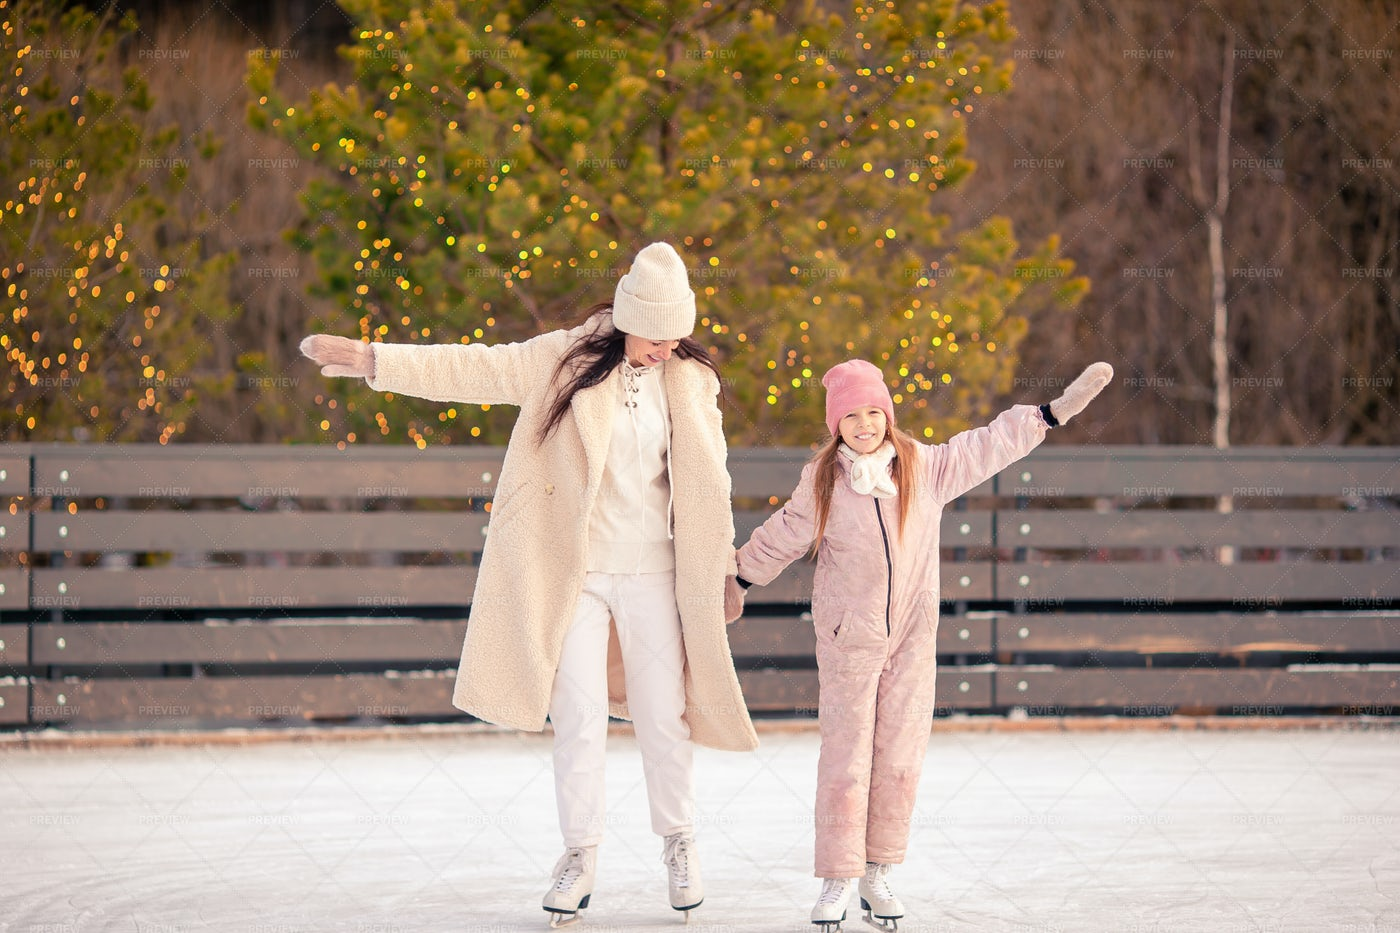 Little Girl And Her Mother Skating: Stock Photos